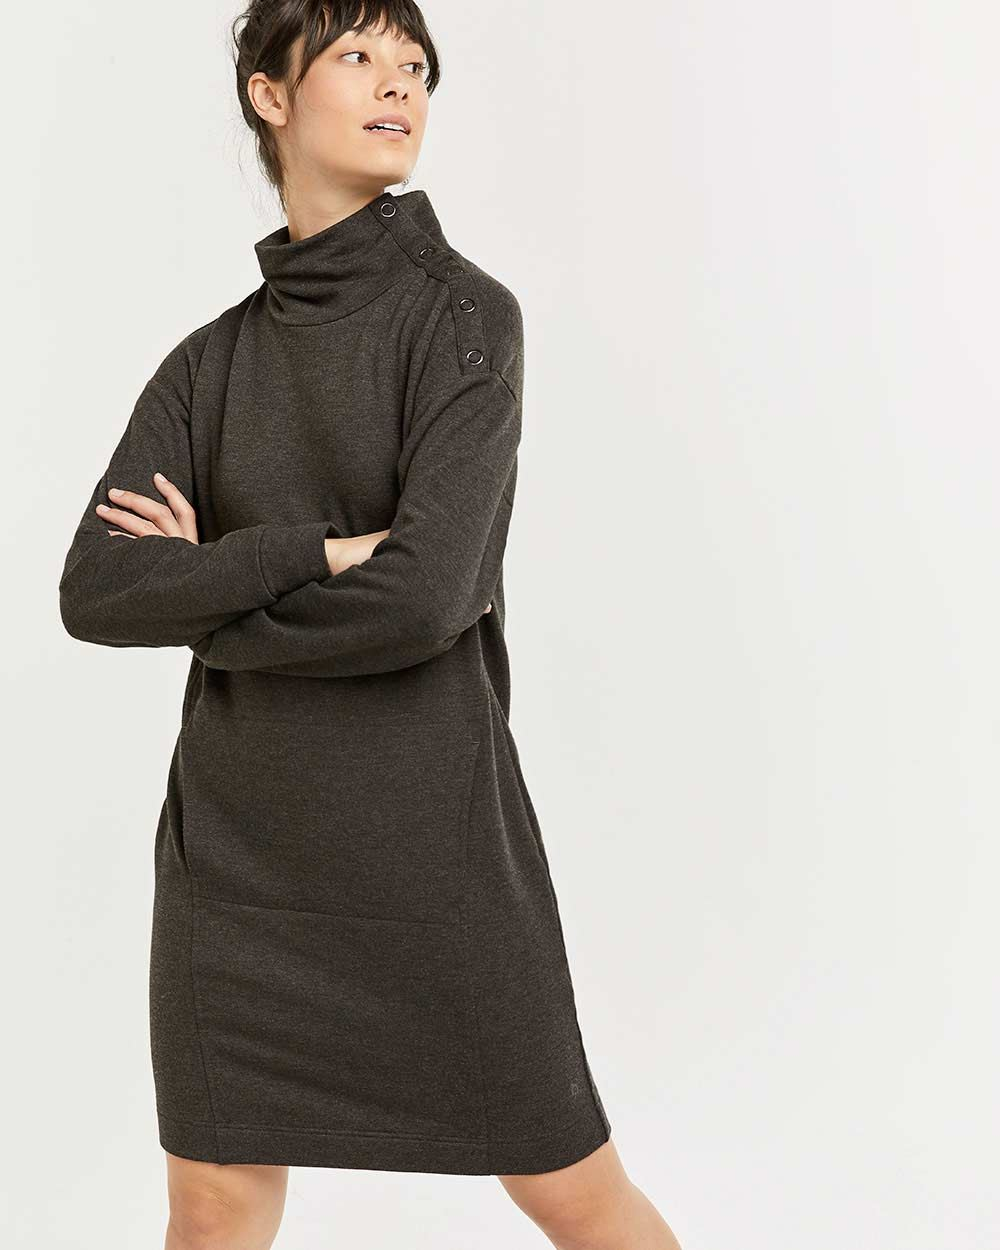 Hyba Mock Neck Fleece Dress with Snap Buttons